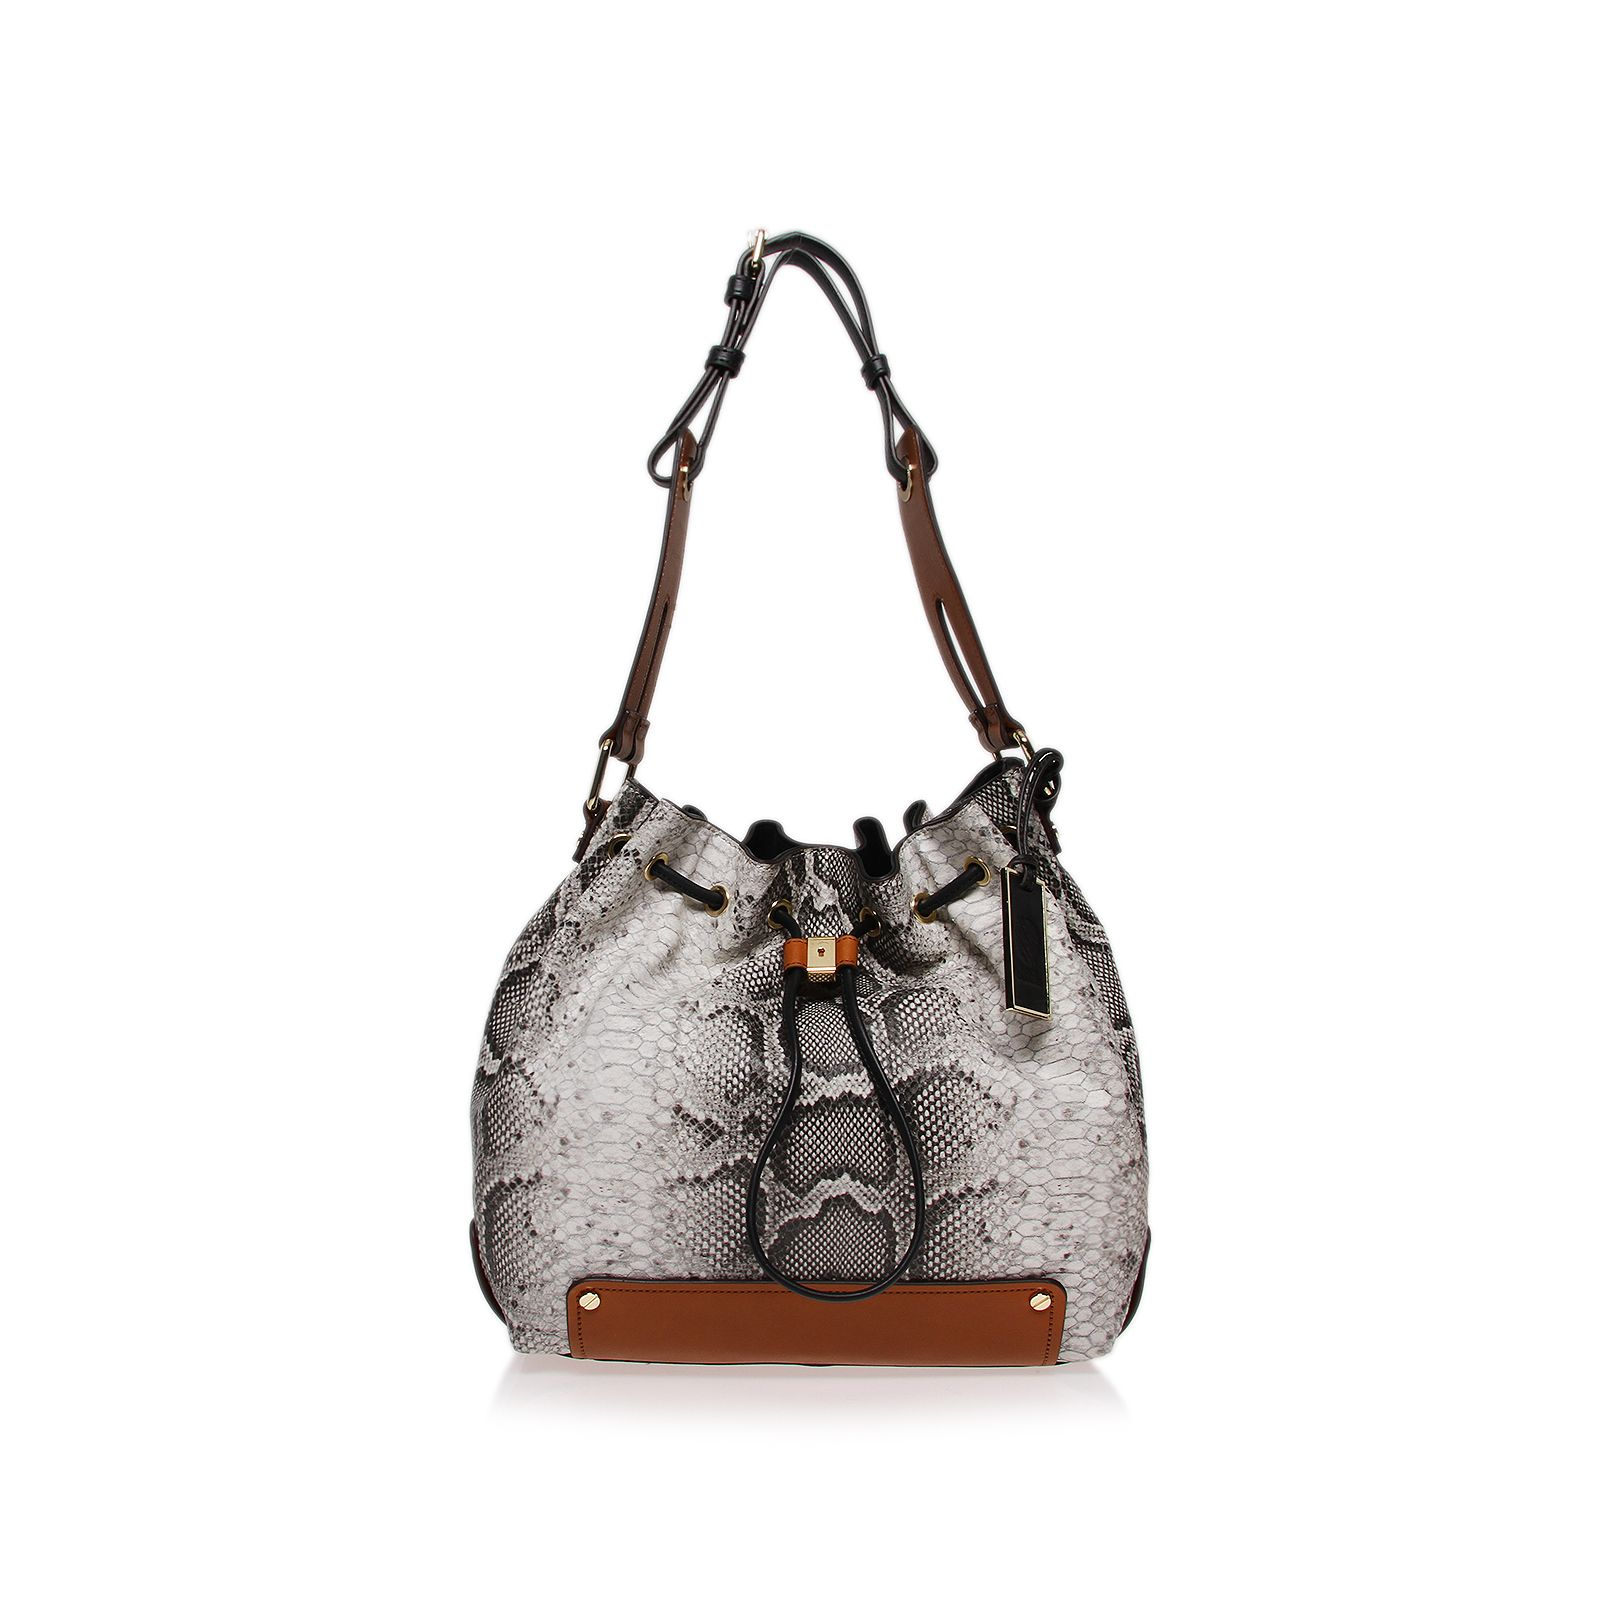 Jill shoulder bag